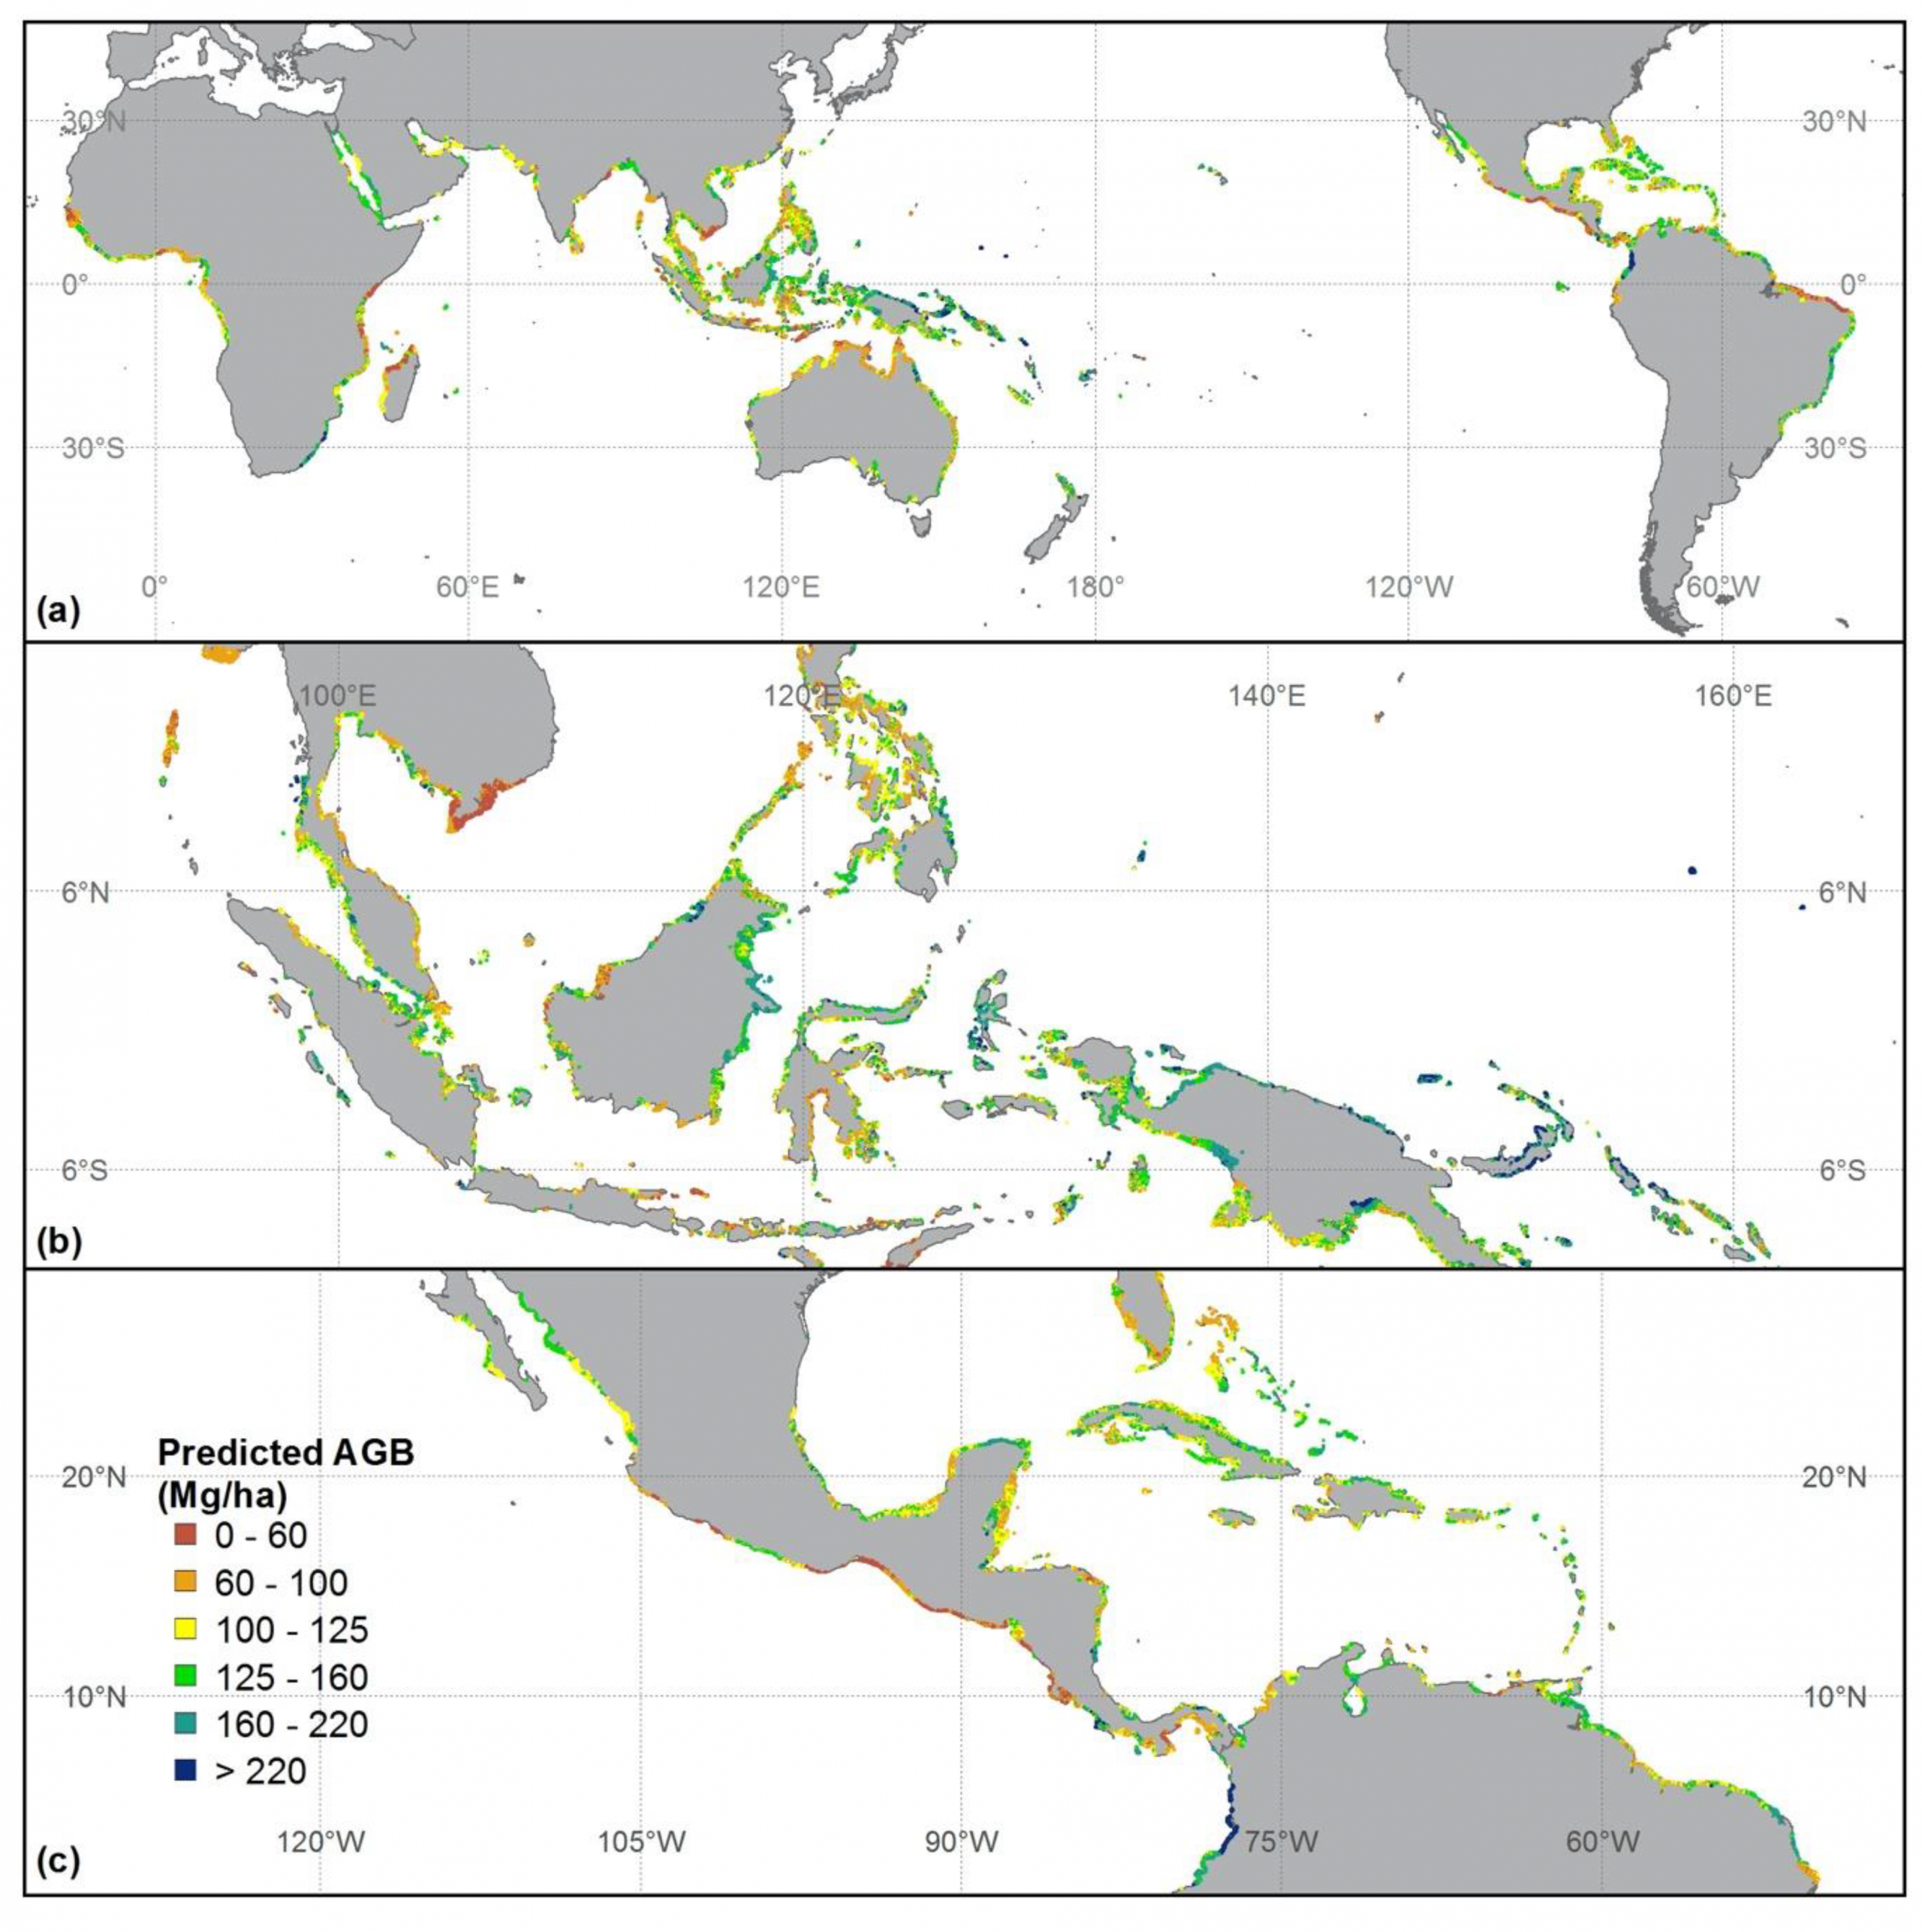 Global mangrove forest AGB map